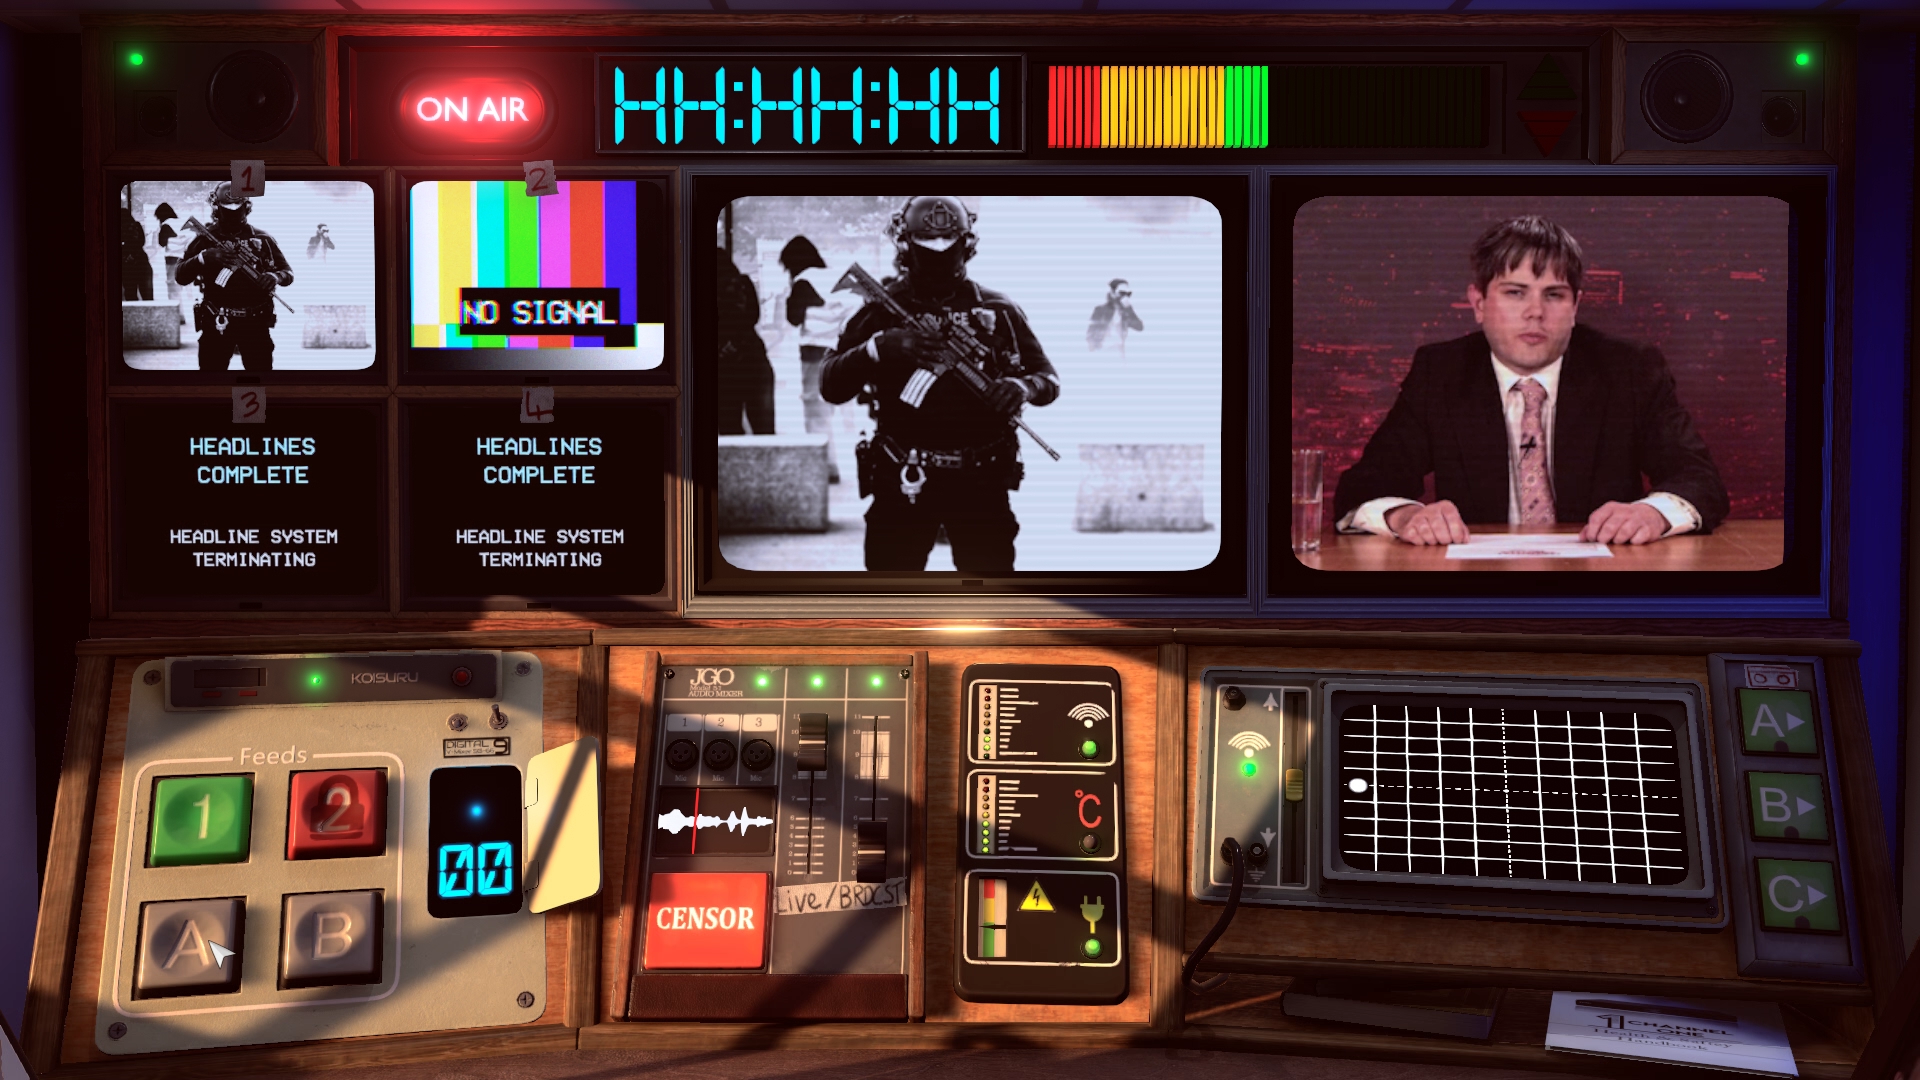 Not For Broadcast - a shot of the control panel, broadcasting a news segment about the police